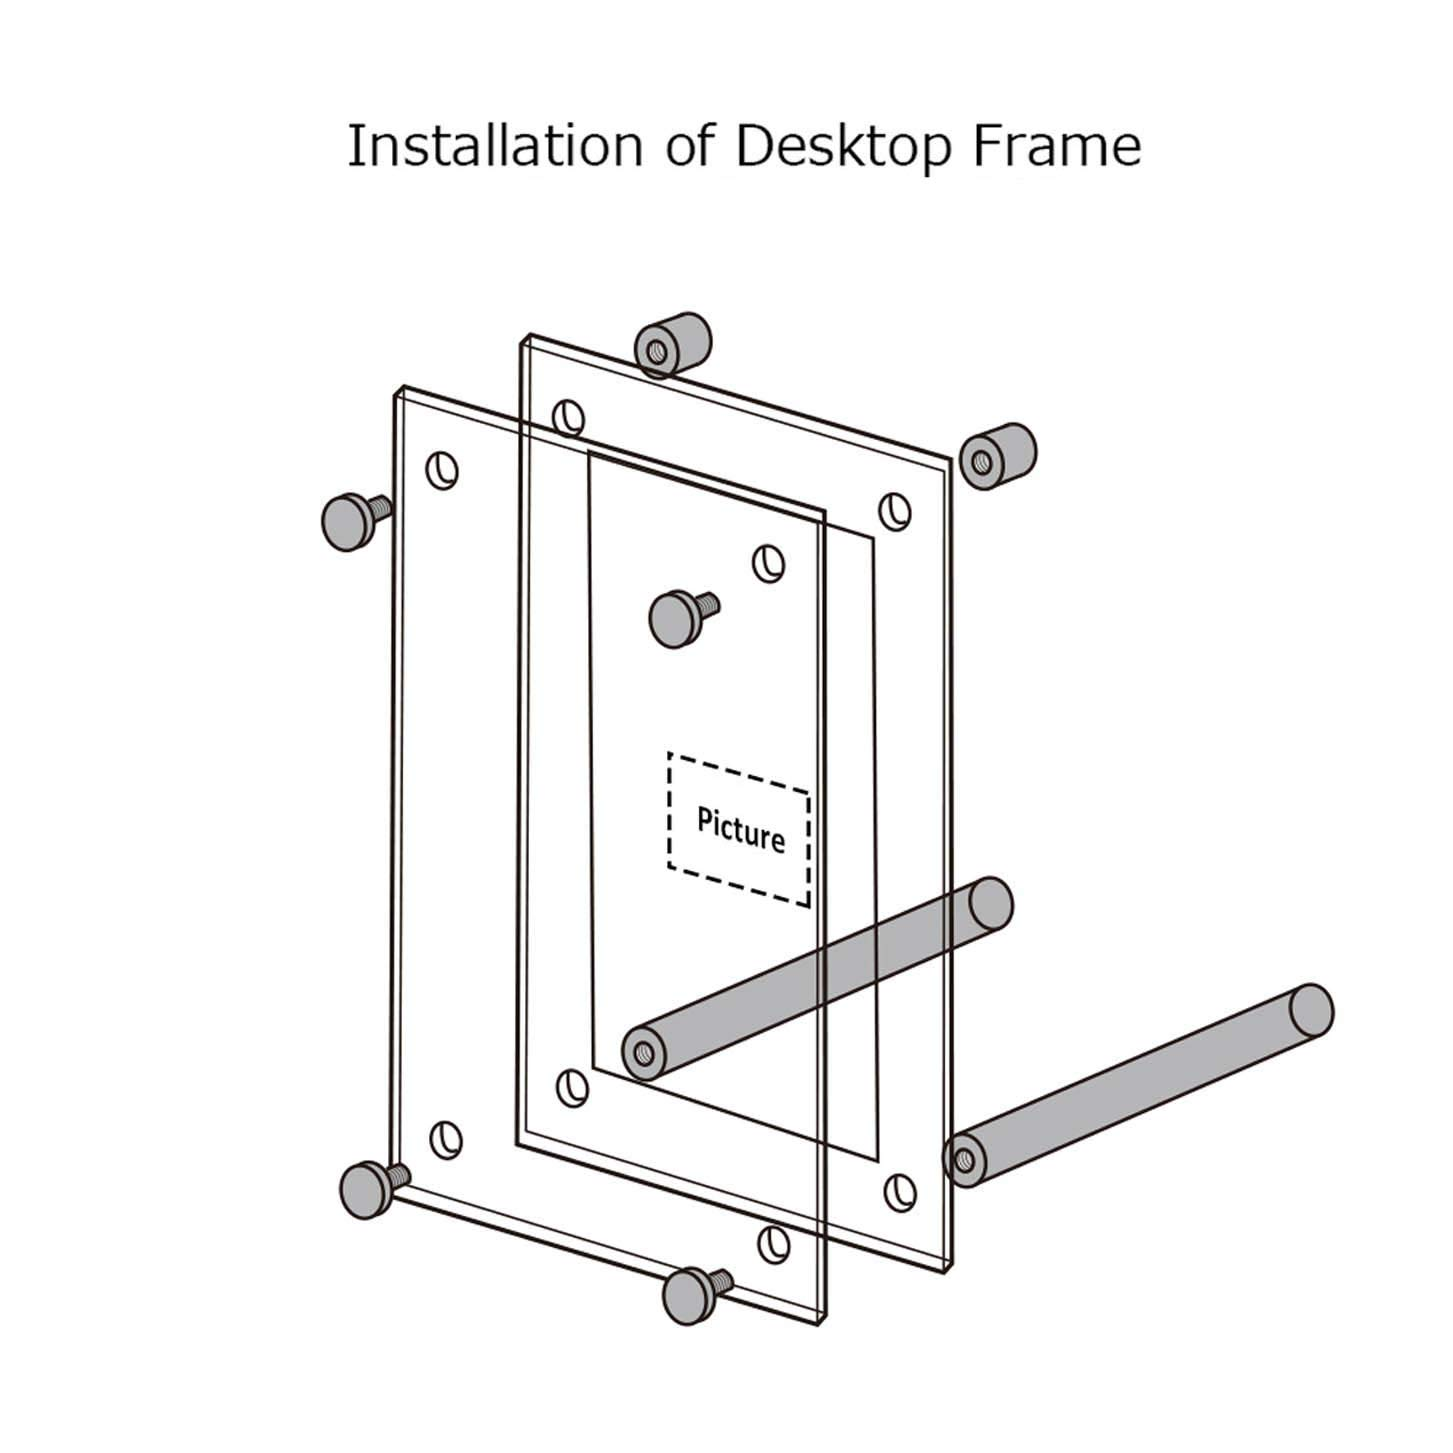 Beveled Frameless Plexiglass Photo Photography Display with Standoff Clear Acrylic Desktop Picture Frame 3.5x5